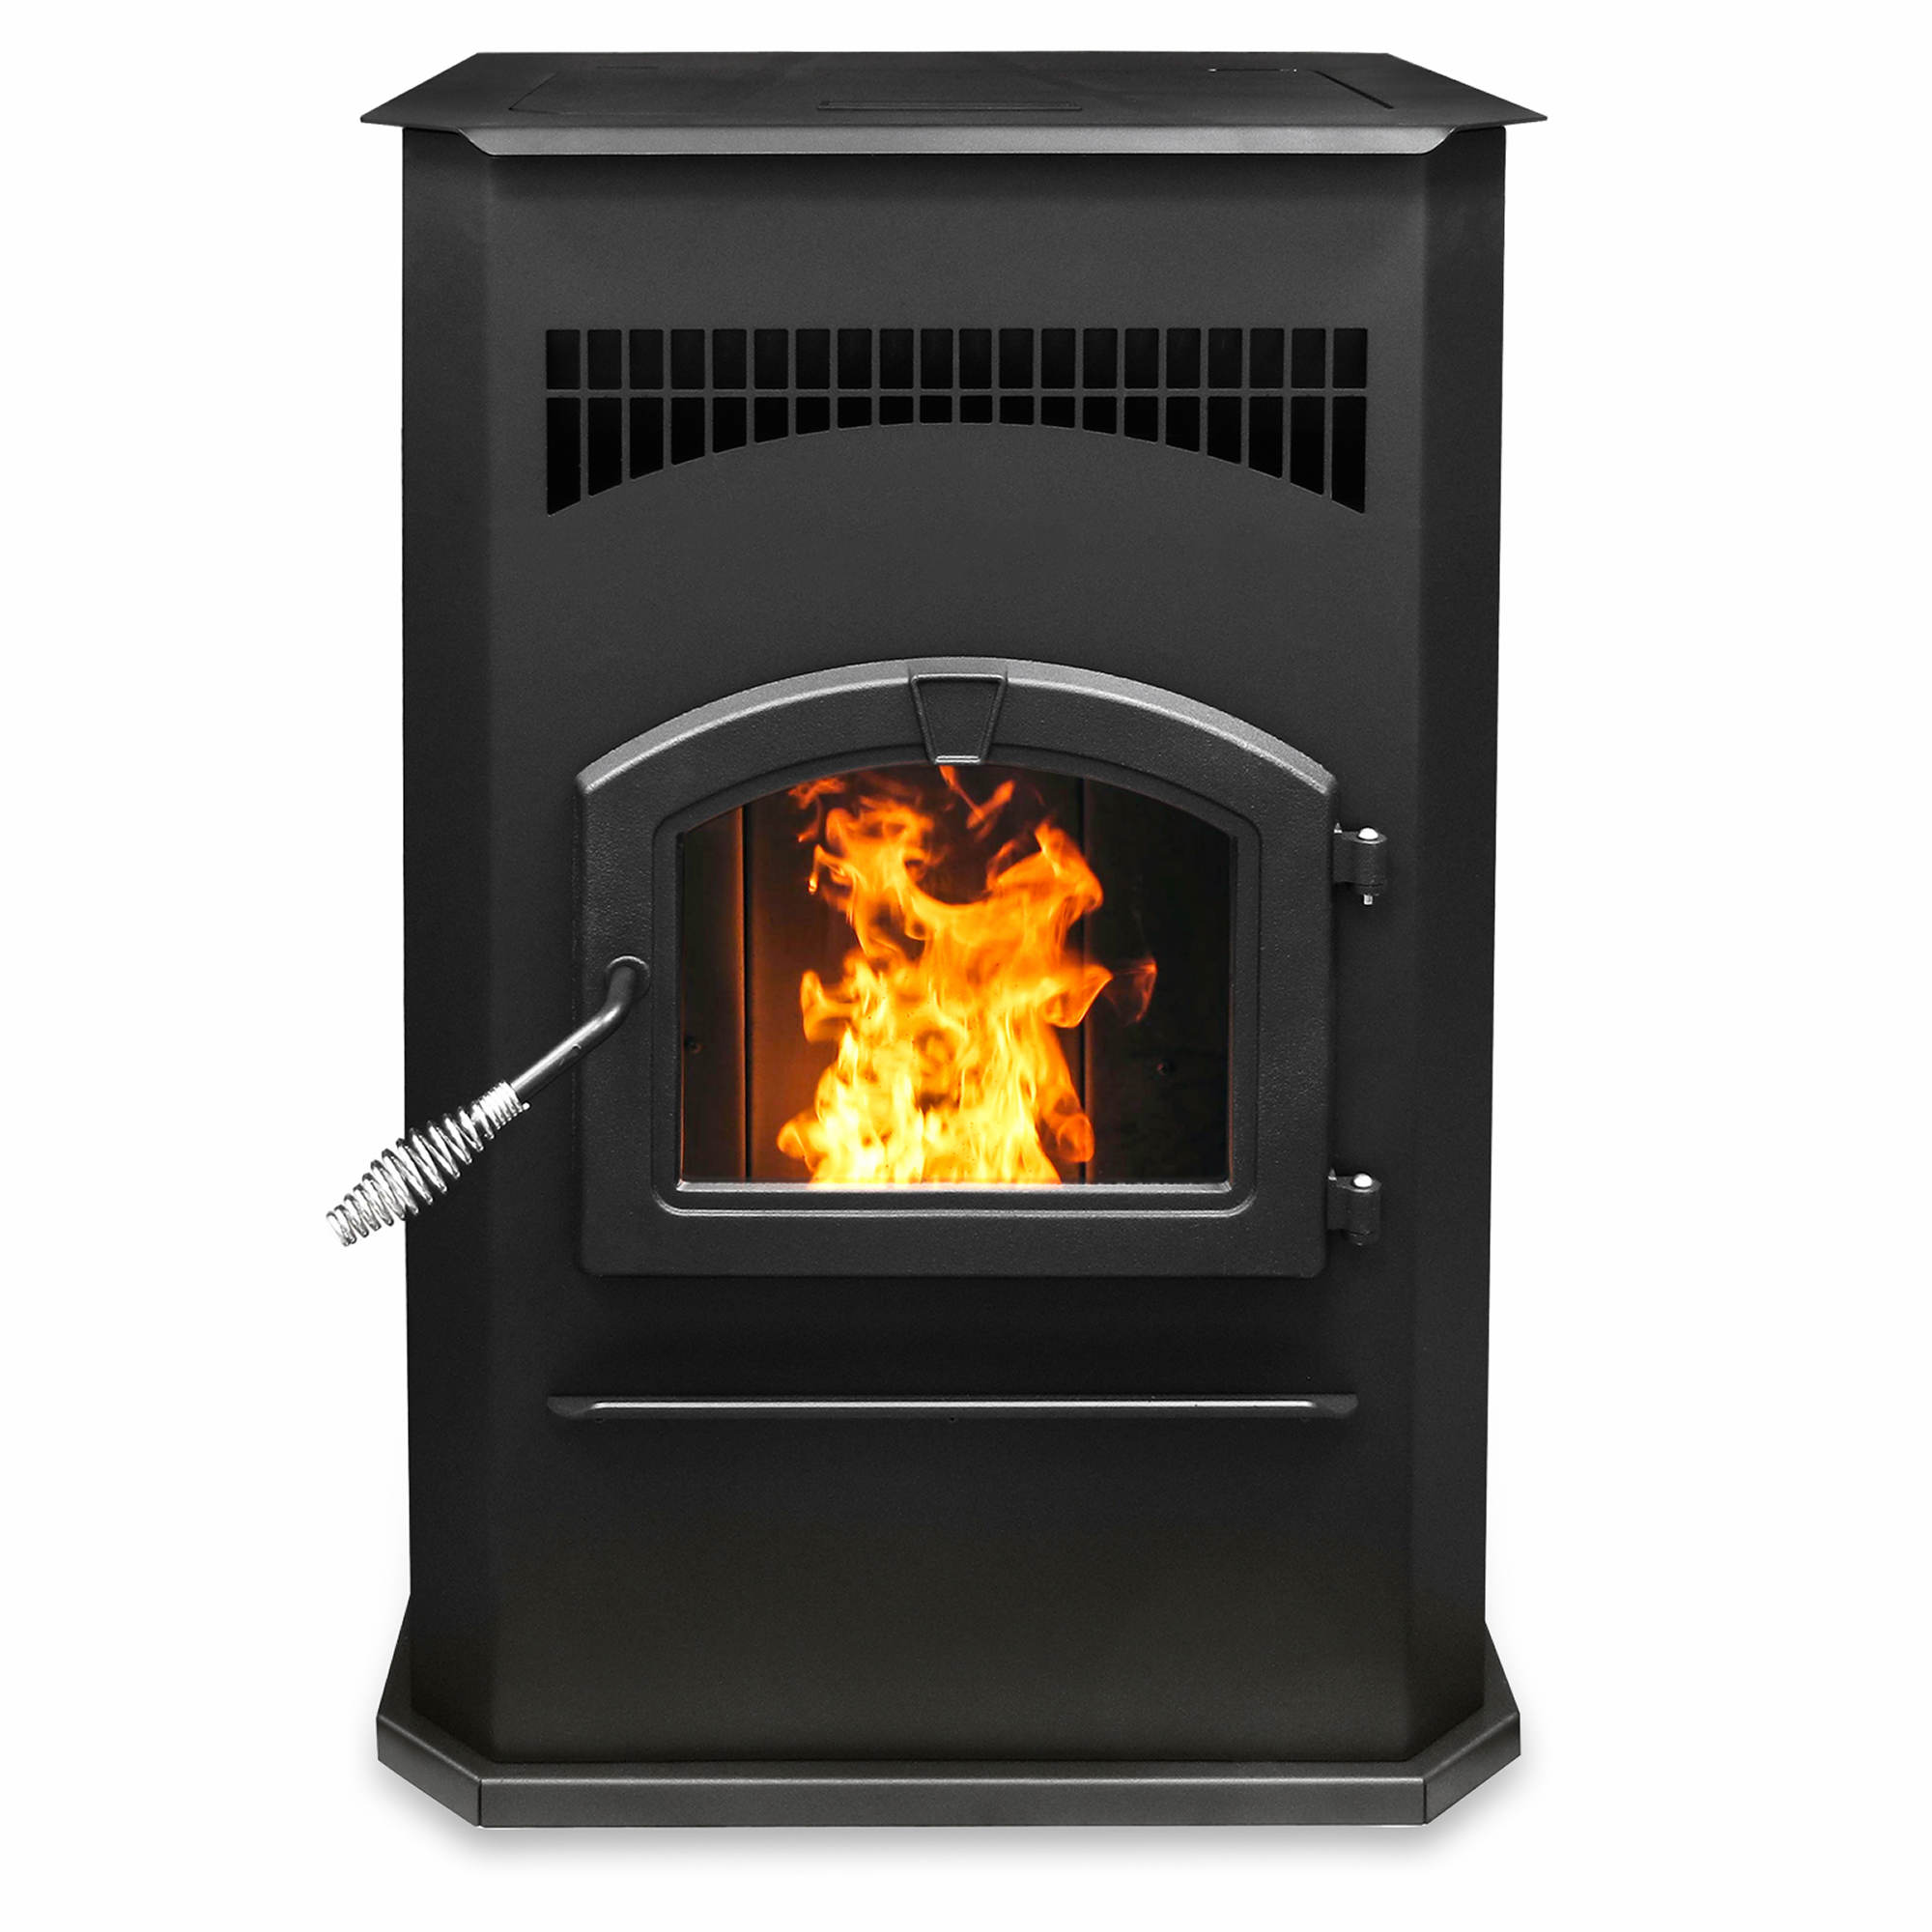 Sarah Check Hearth Cabinet: Pleasant Hearth Pellet Stove With 120-lb. Hopper